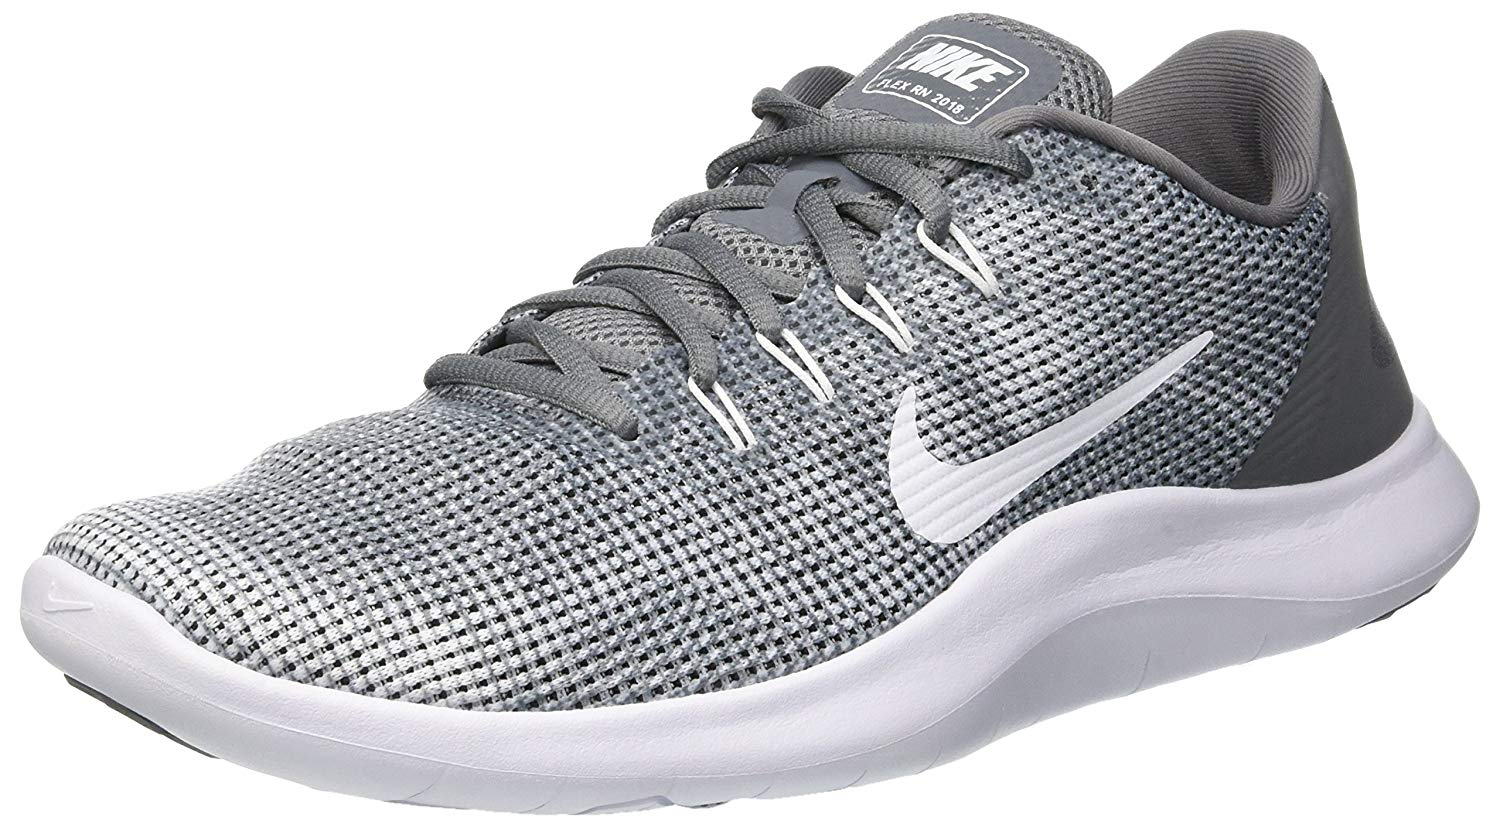 Nike Flex RN 2020 Reviewed for